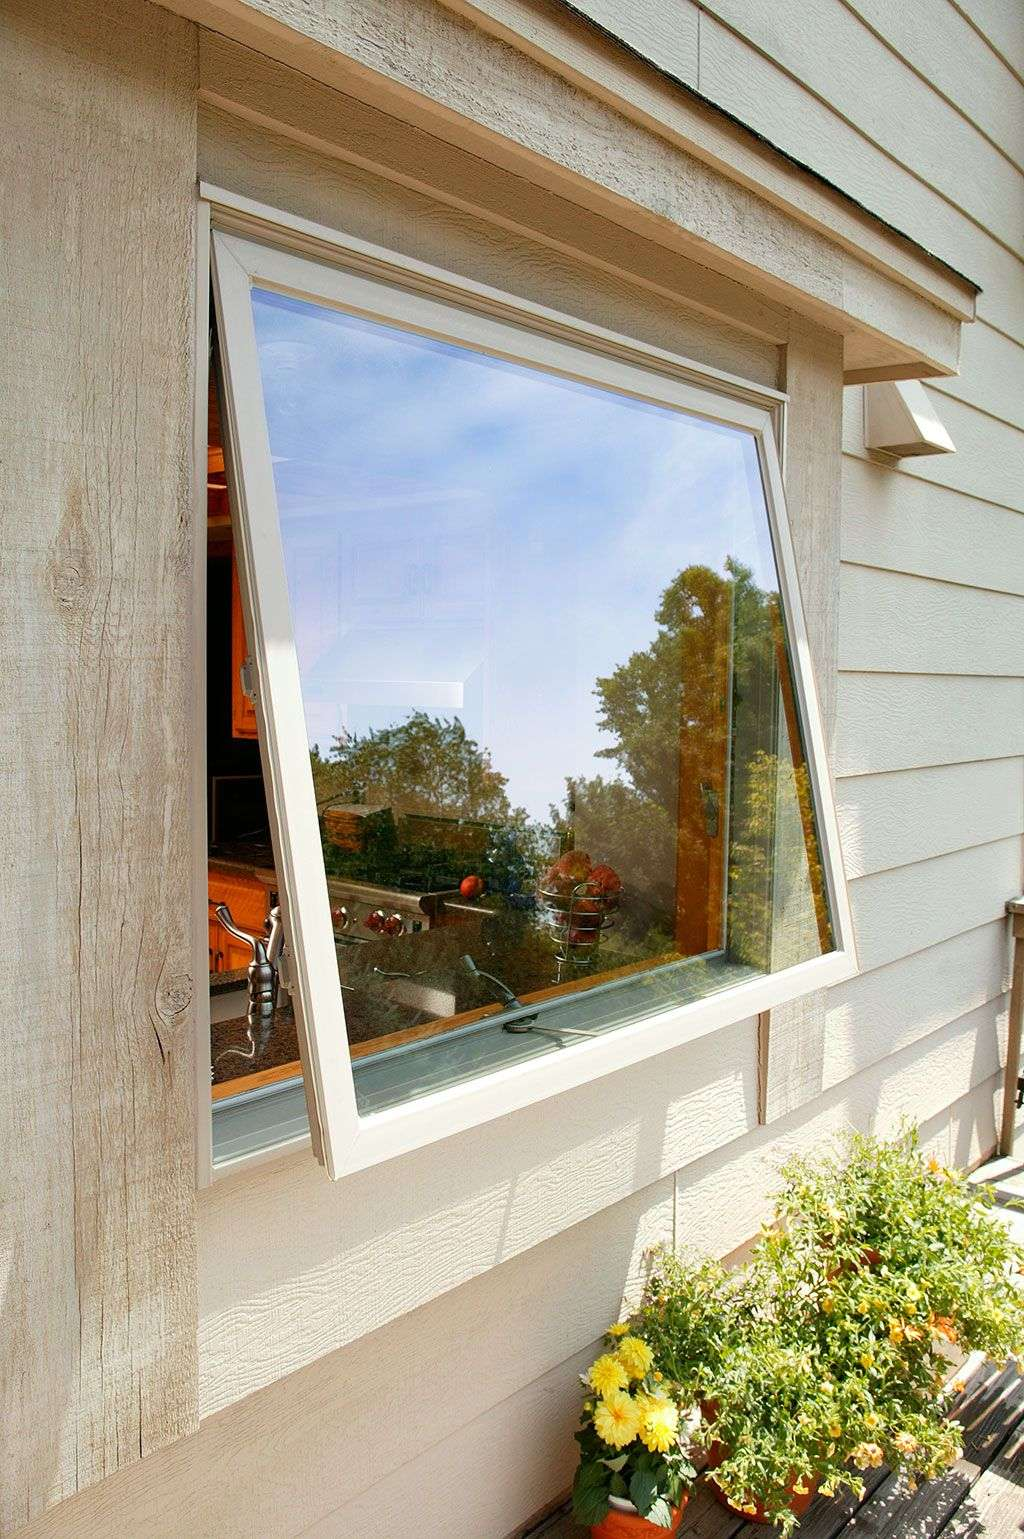 Top Hung Amp Side Hung Windows Prayosha Enterprise Ltd